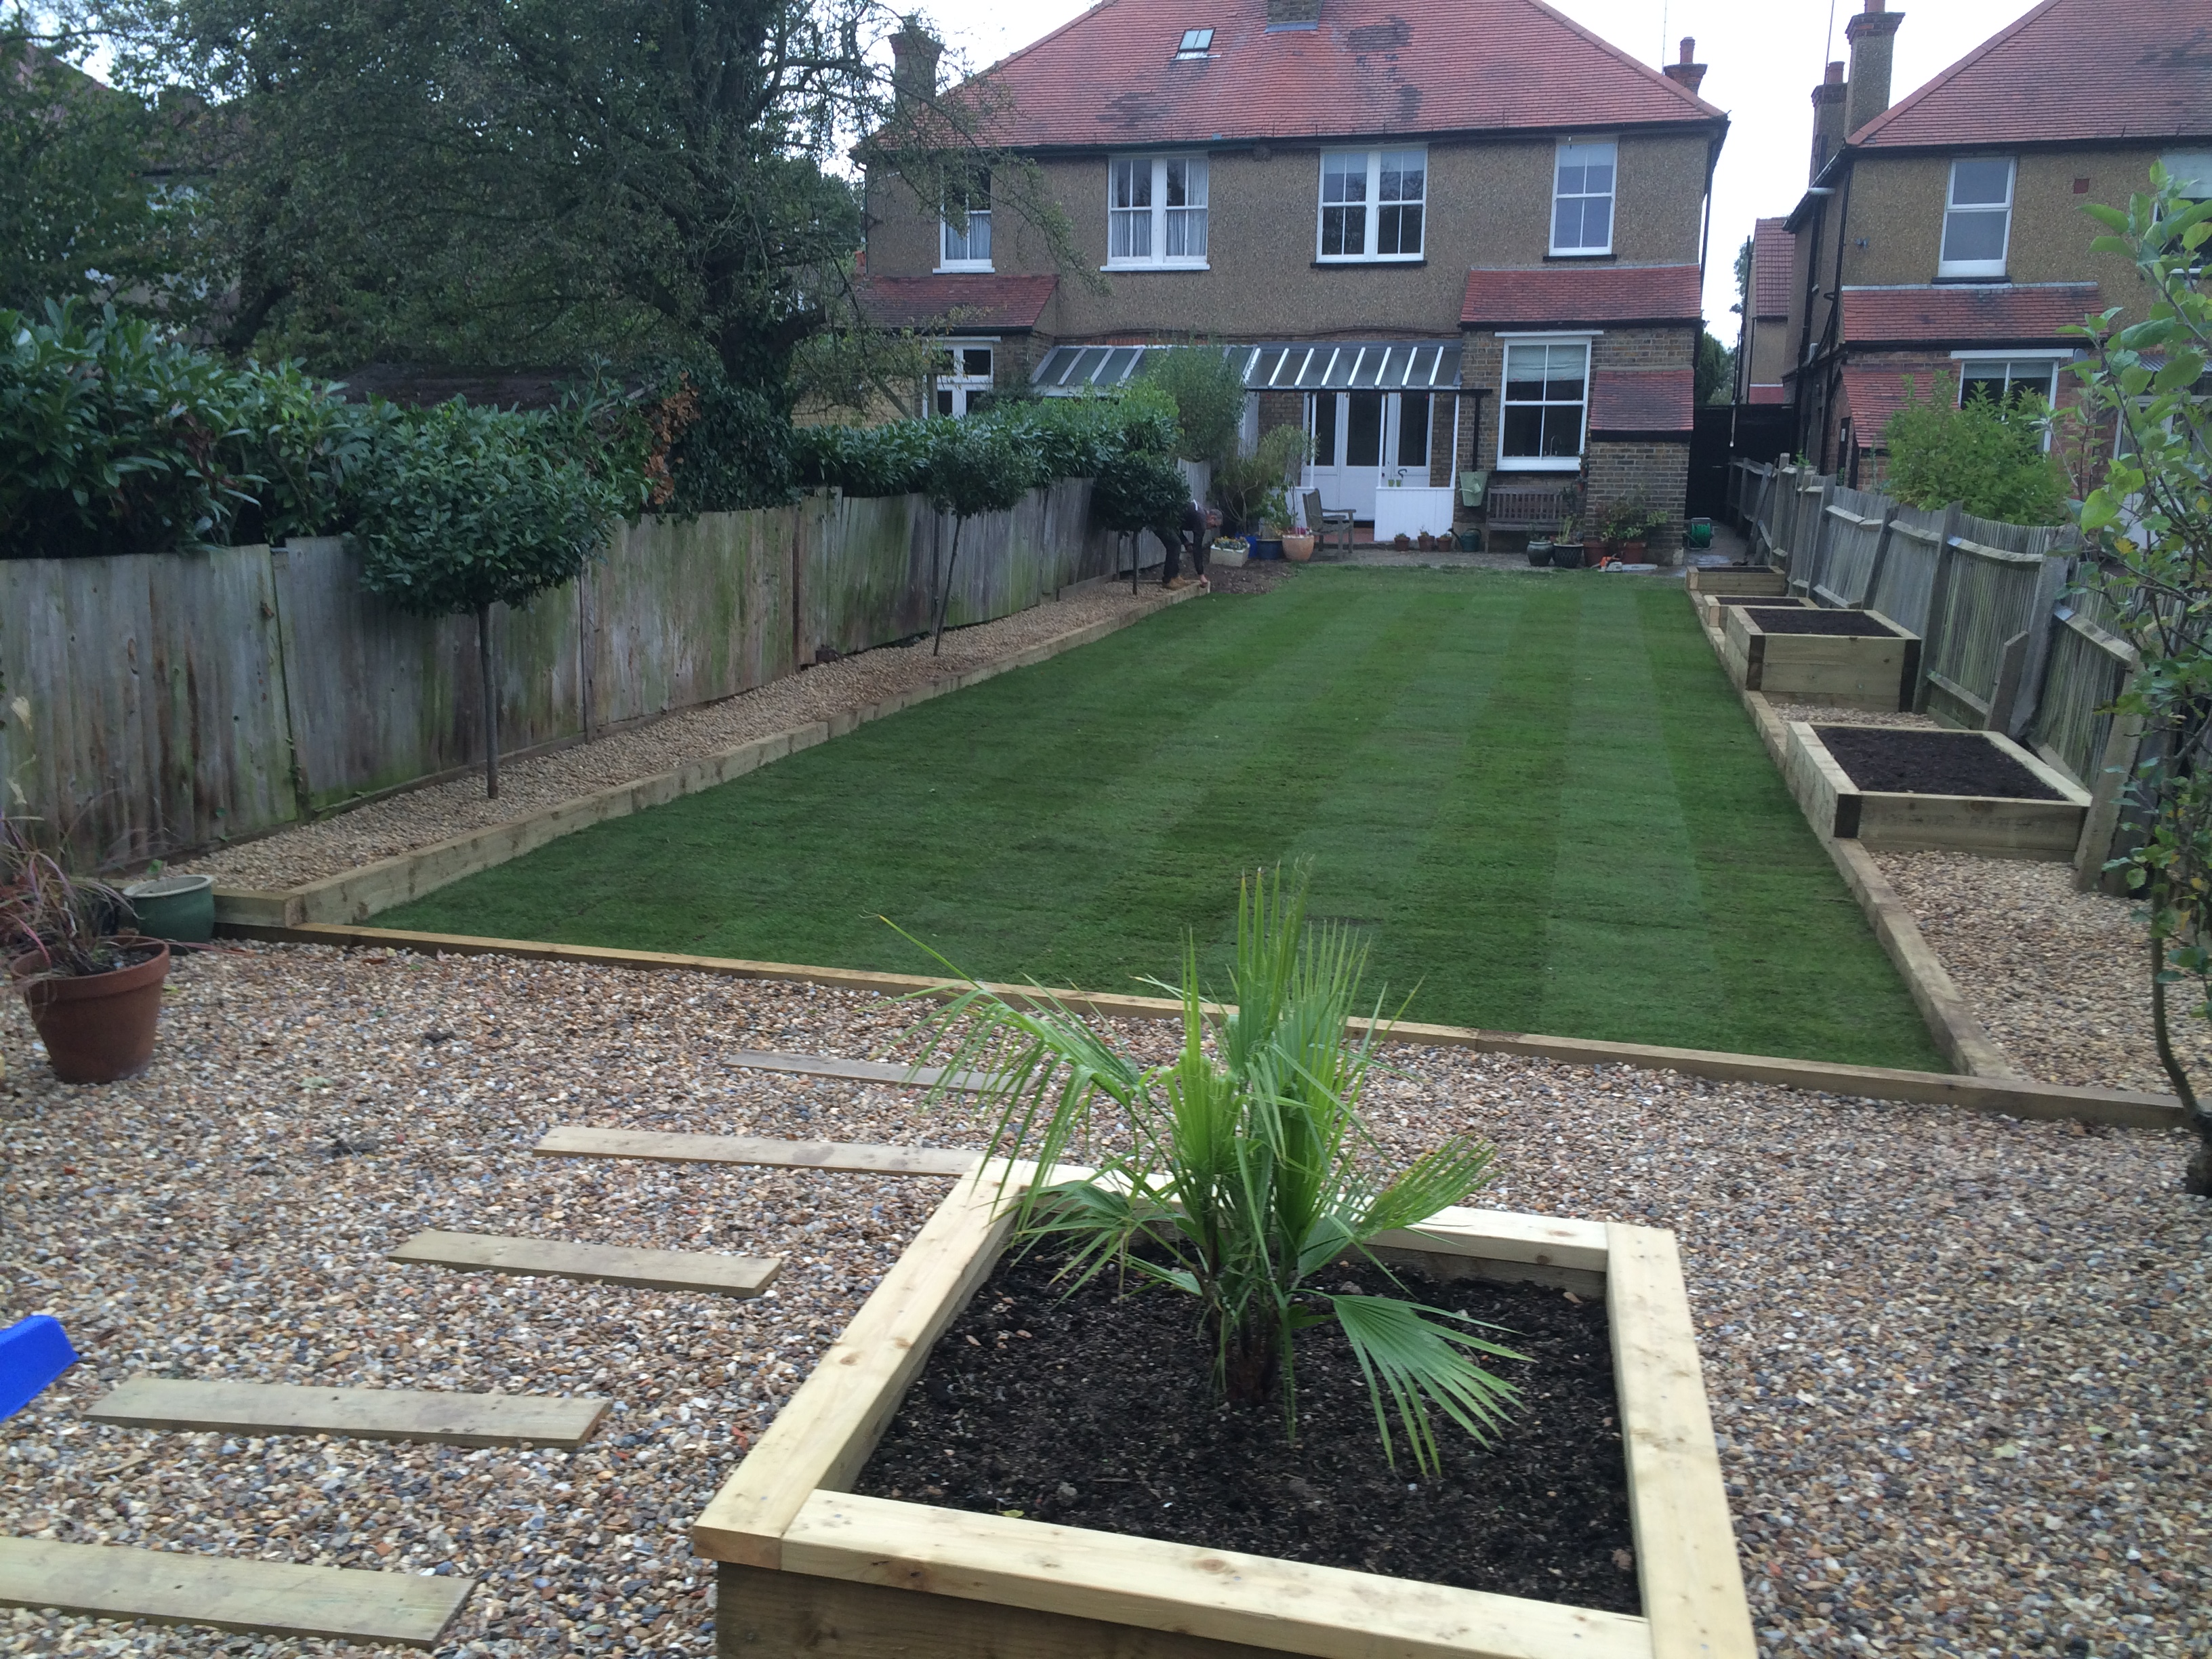 New Lawn and planters